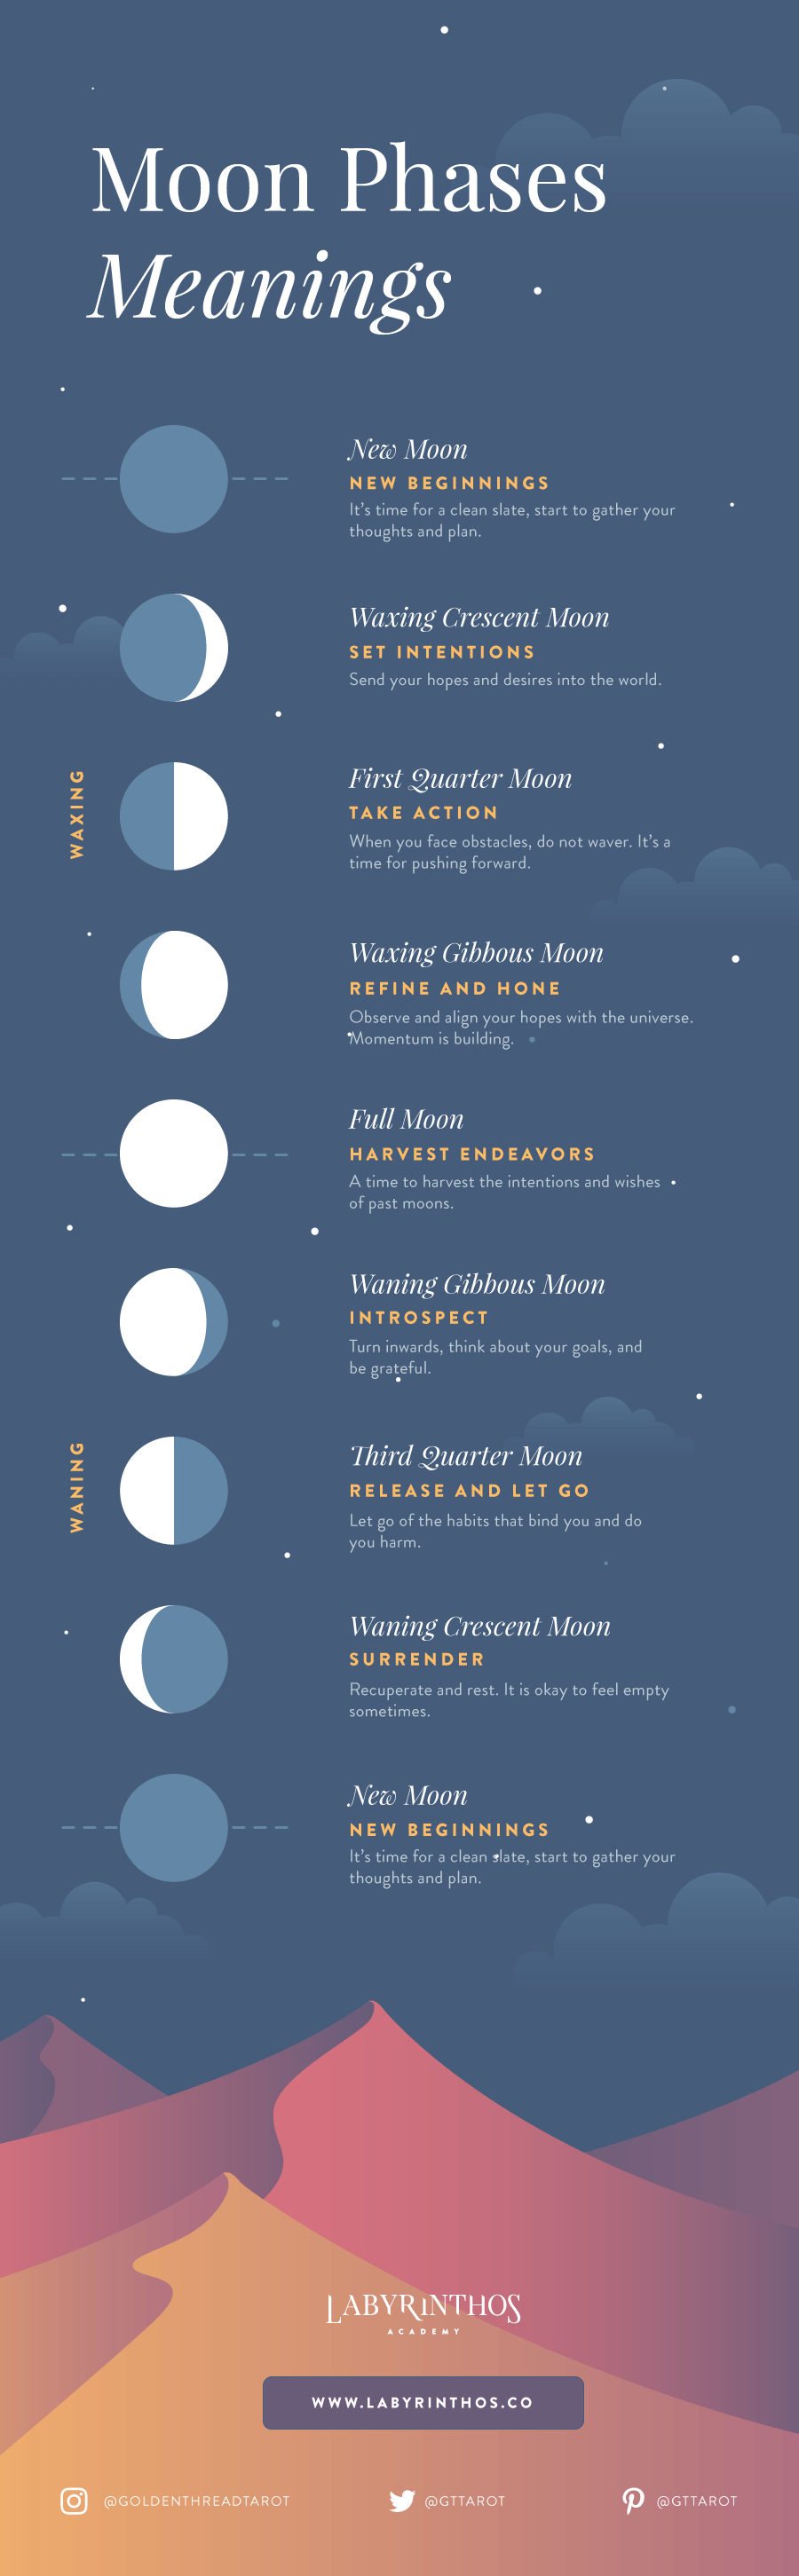 Moon Phases Meanings Infographic: A Beginner's Framework for Following Lunar Rhythms